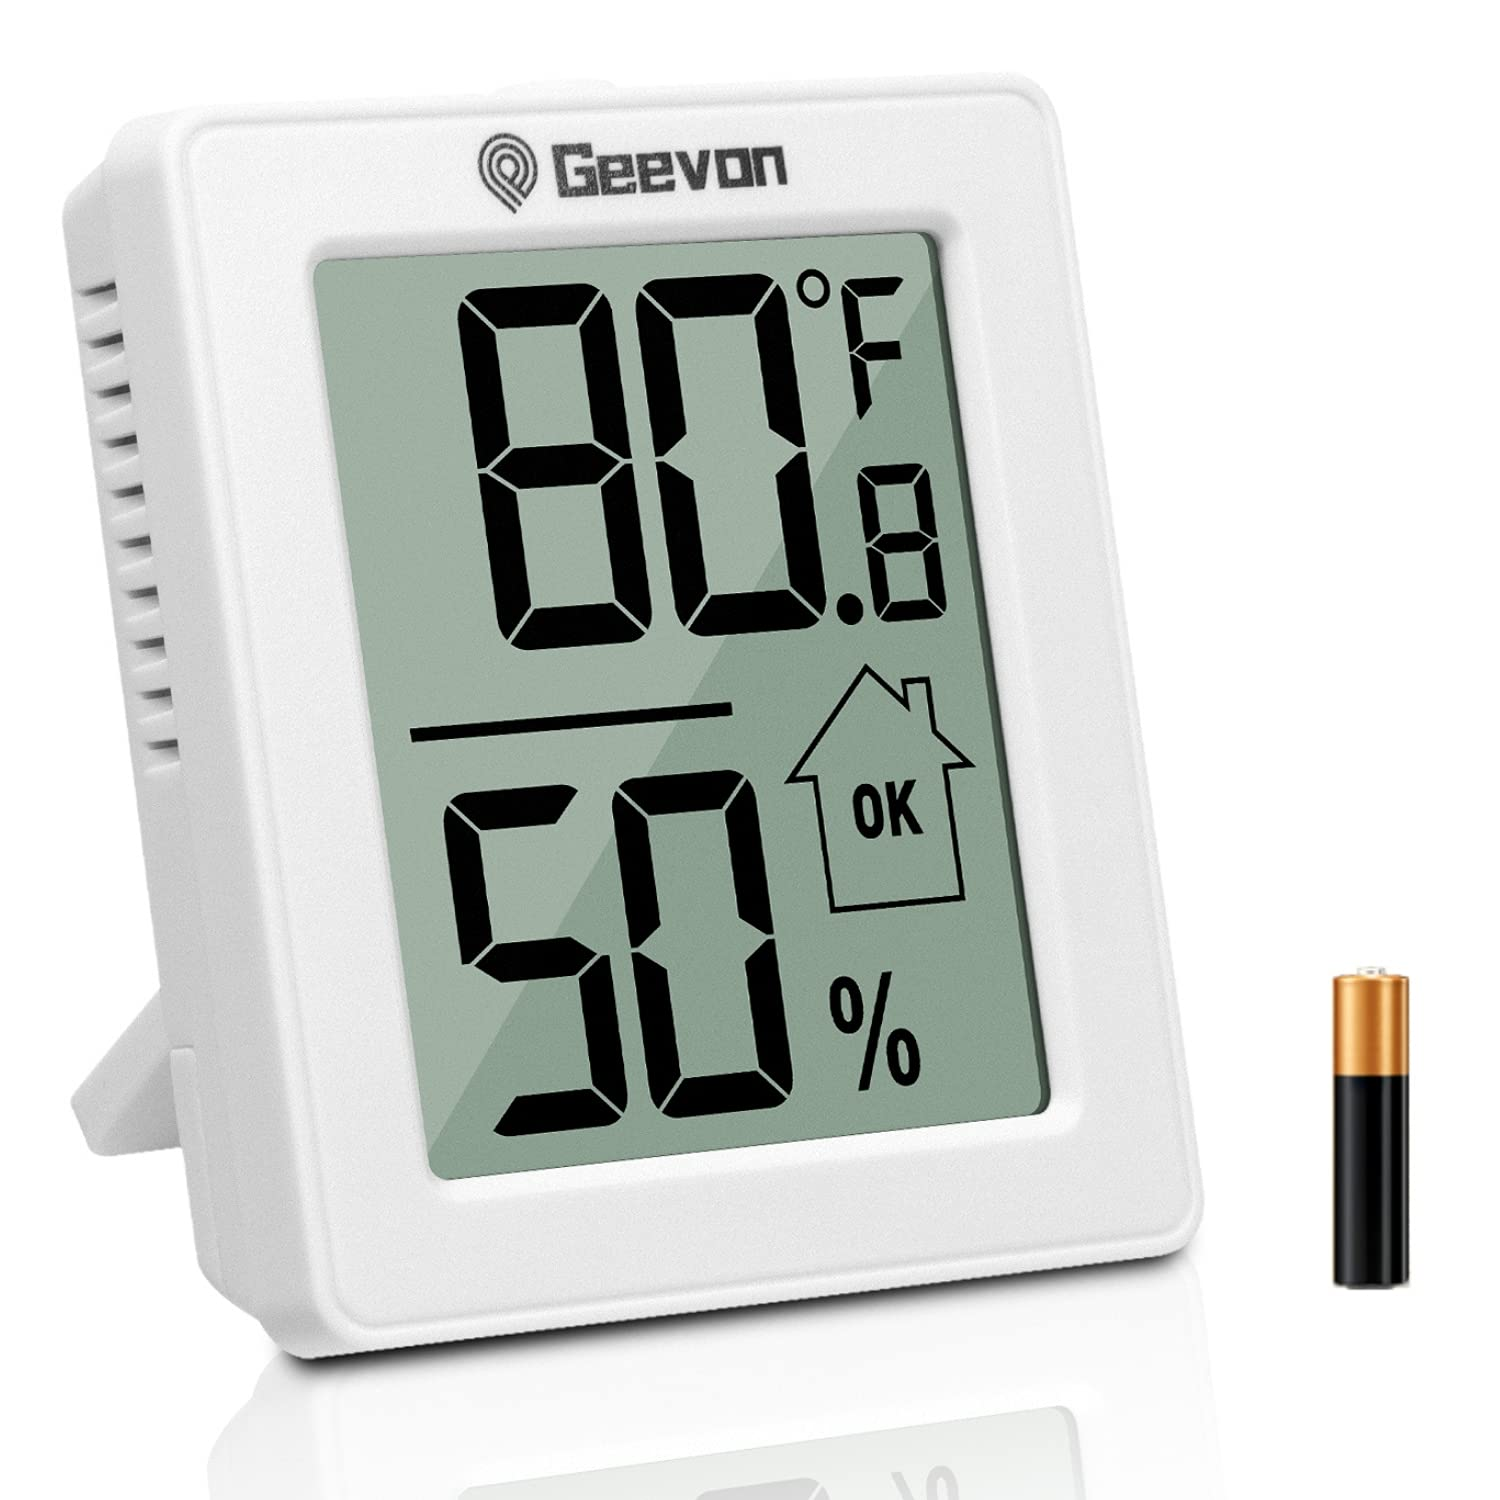 Geevon Humidity Max 74% OFF Gauge Room Thermometer Ba Limited time for free shipping Hygrometer with Indoor